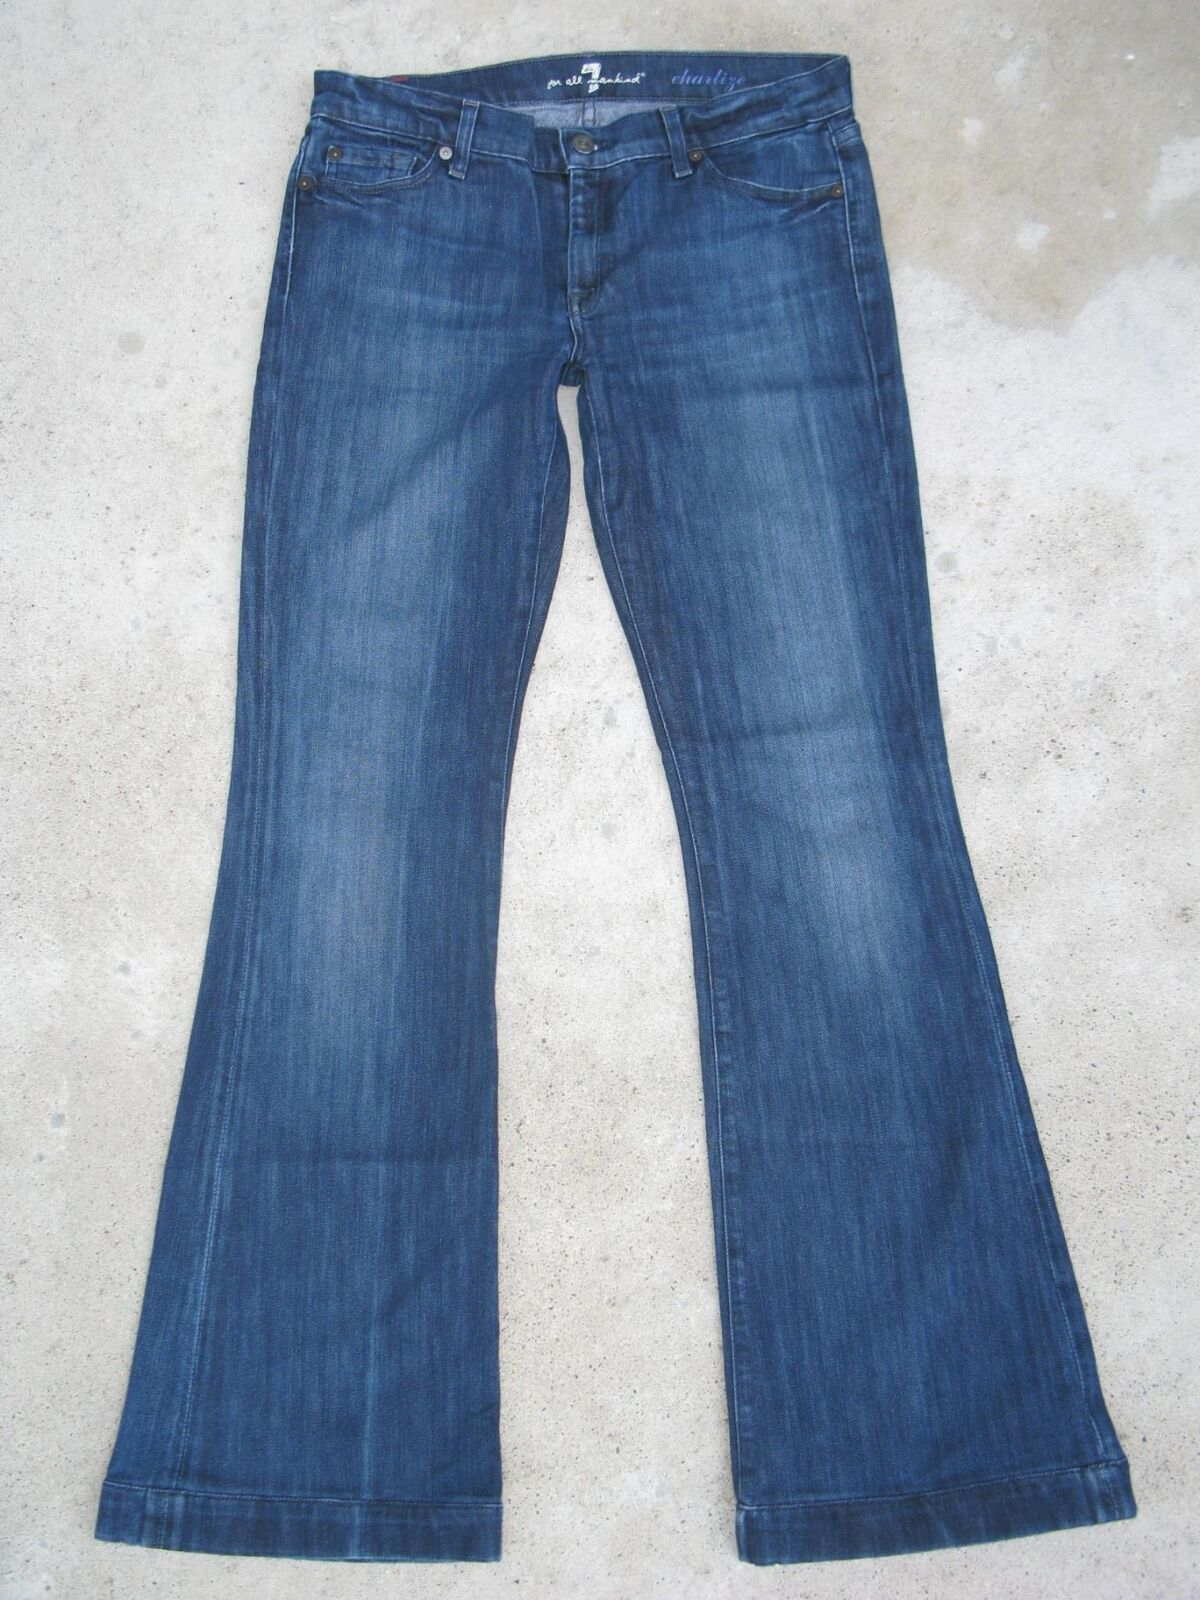 7 For All Mankind Womens Charlize Jeans Sz 30 Mid Rise w Stretch Flare Dark